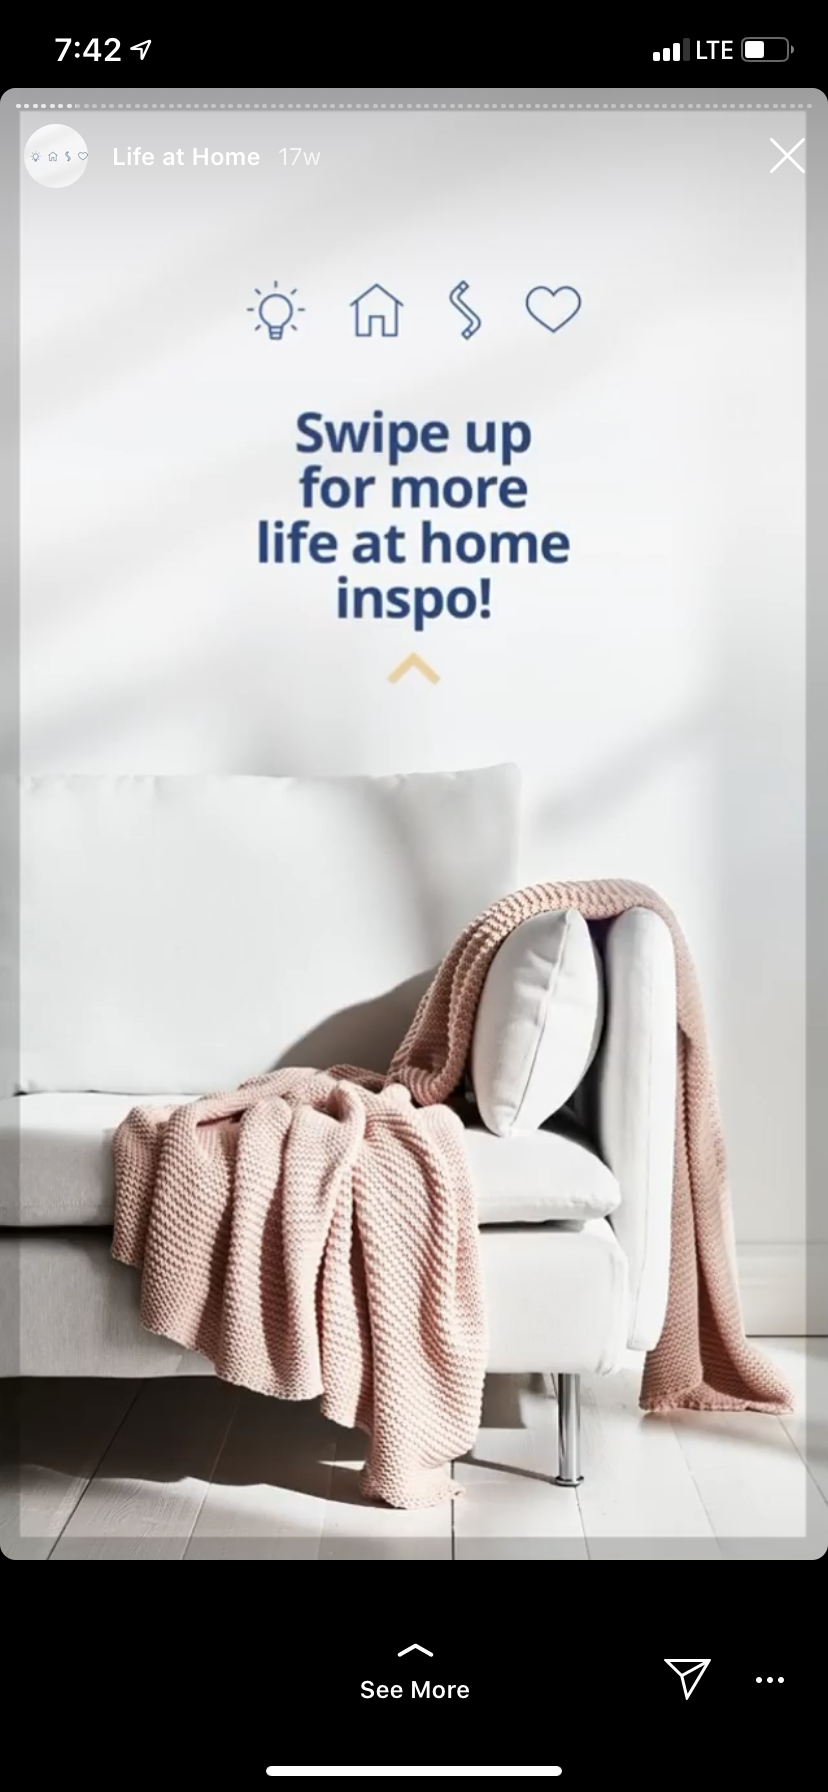 """Ikea instagram story photo featuring a white couch with a pink throw blanket. Text reads: """"Swipe up for more life at home inspo"""""""